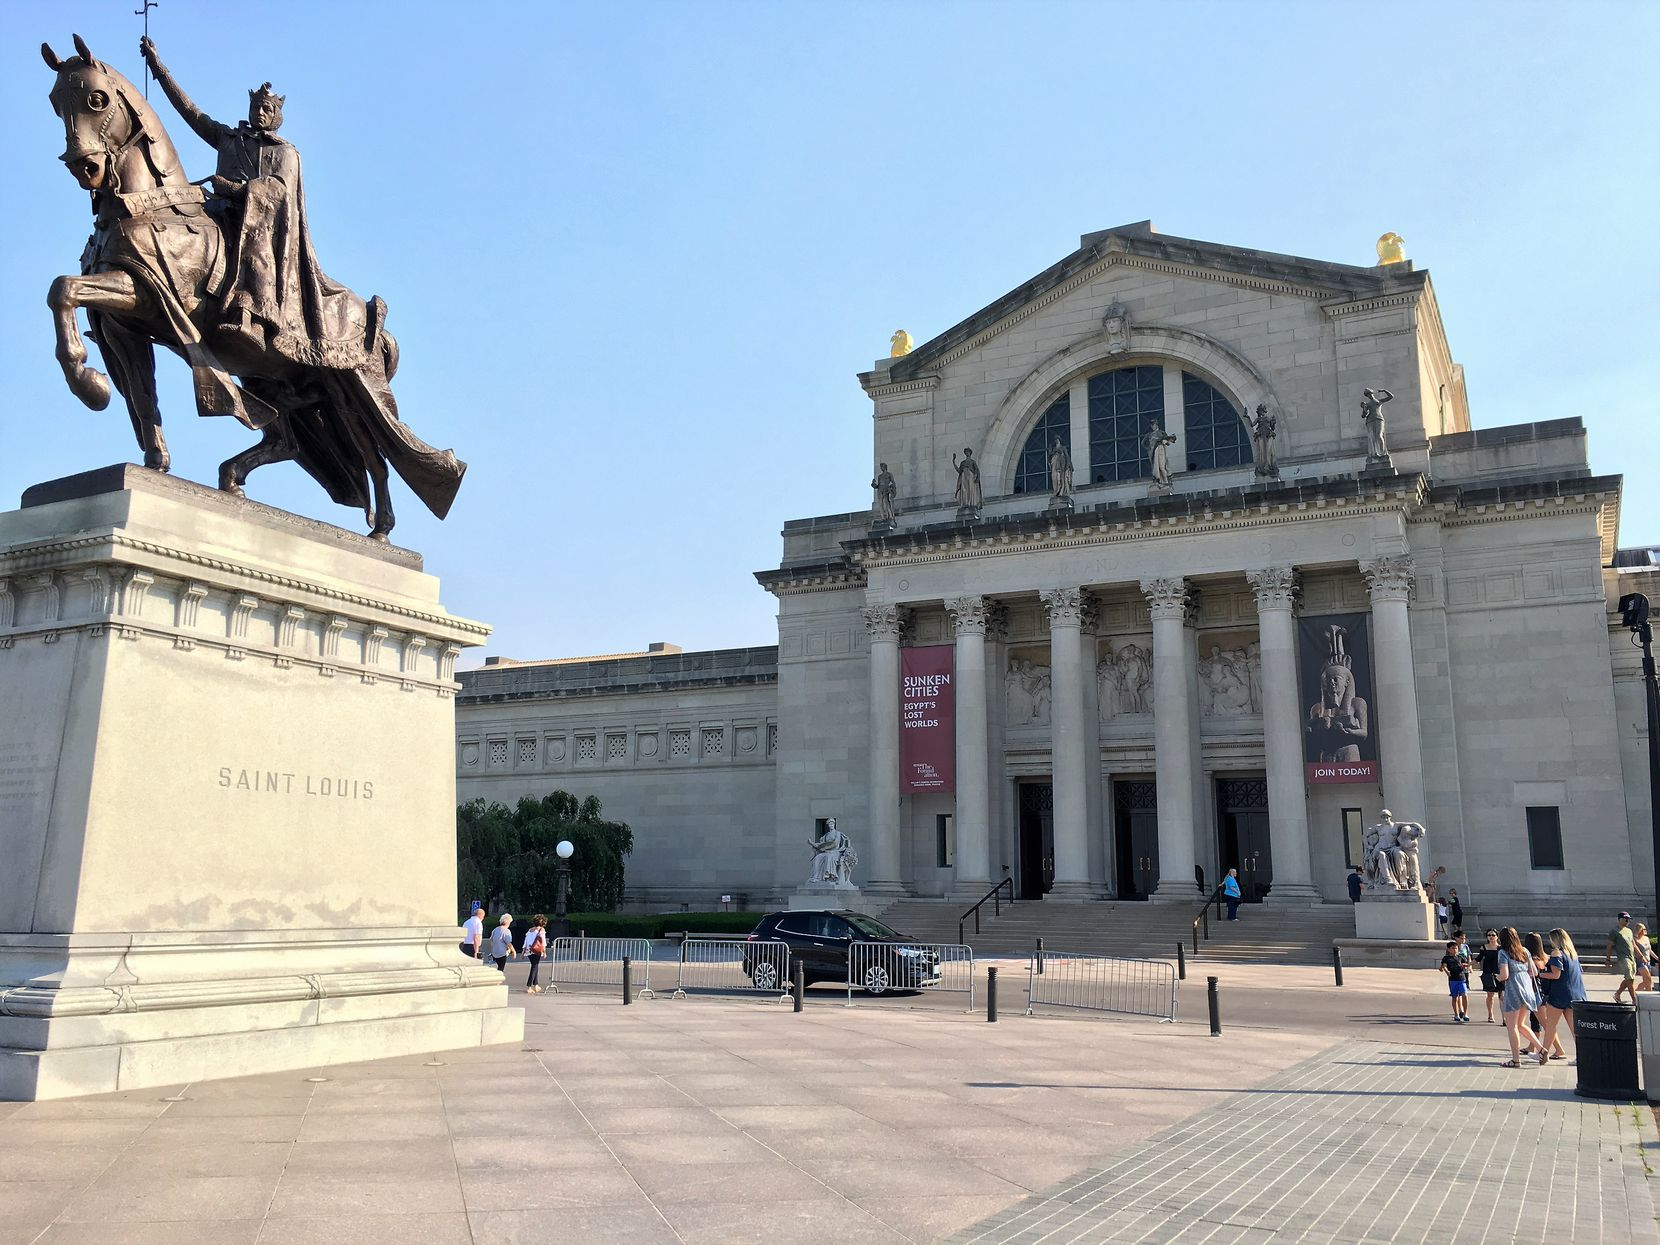 Visitors to the St. Louis Art Museum are greeted by a statue of the French King Louis IX, for whom the city was named by its French founders.